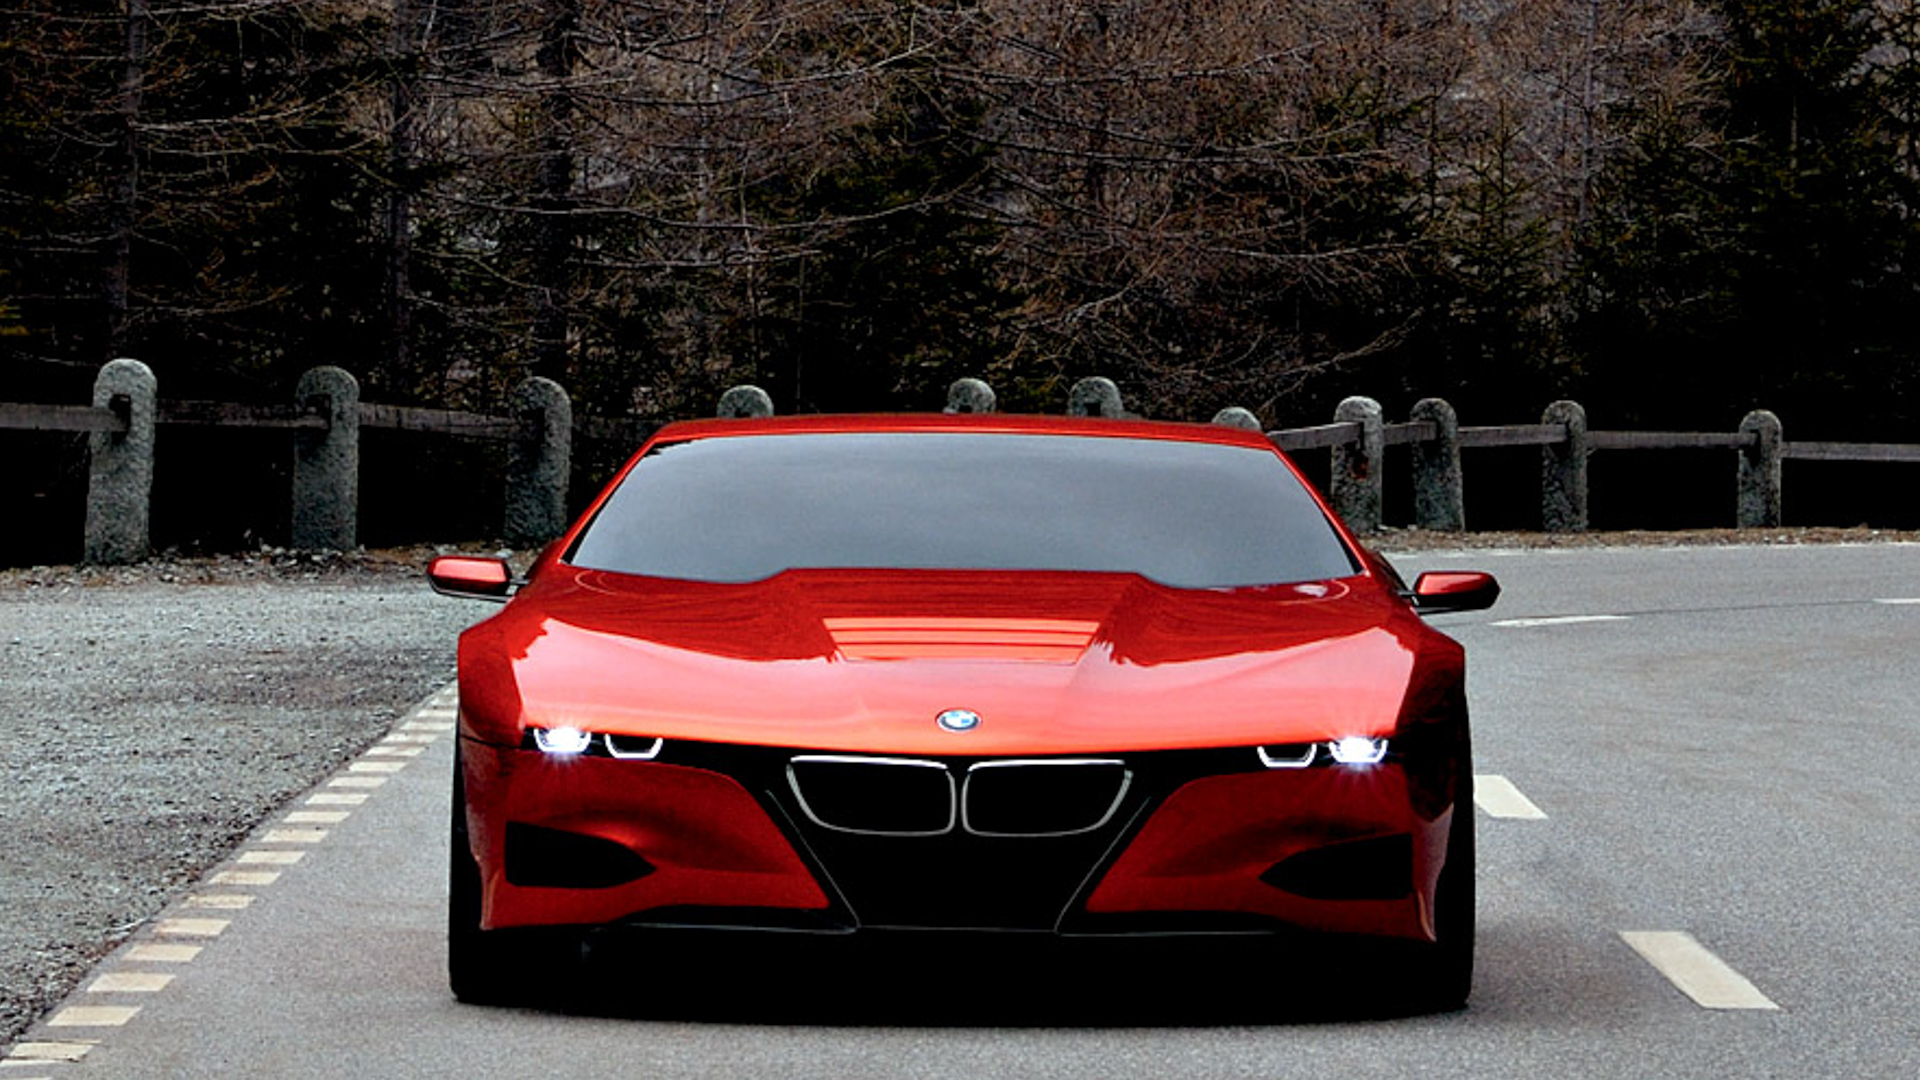 BMW Vision M NEXT vs BMW M1 Hommage 4 of 8